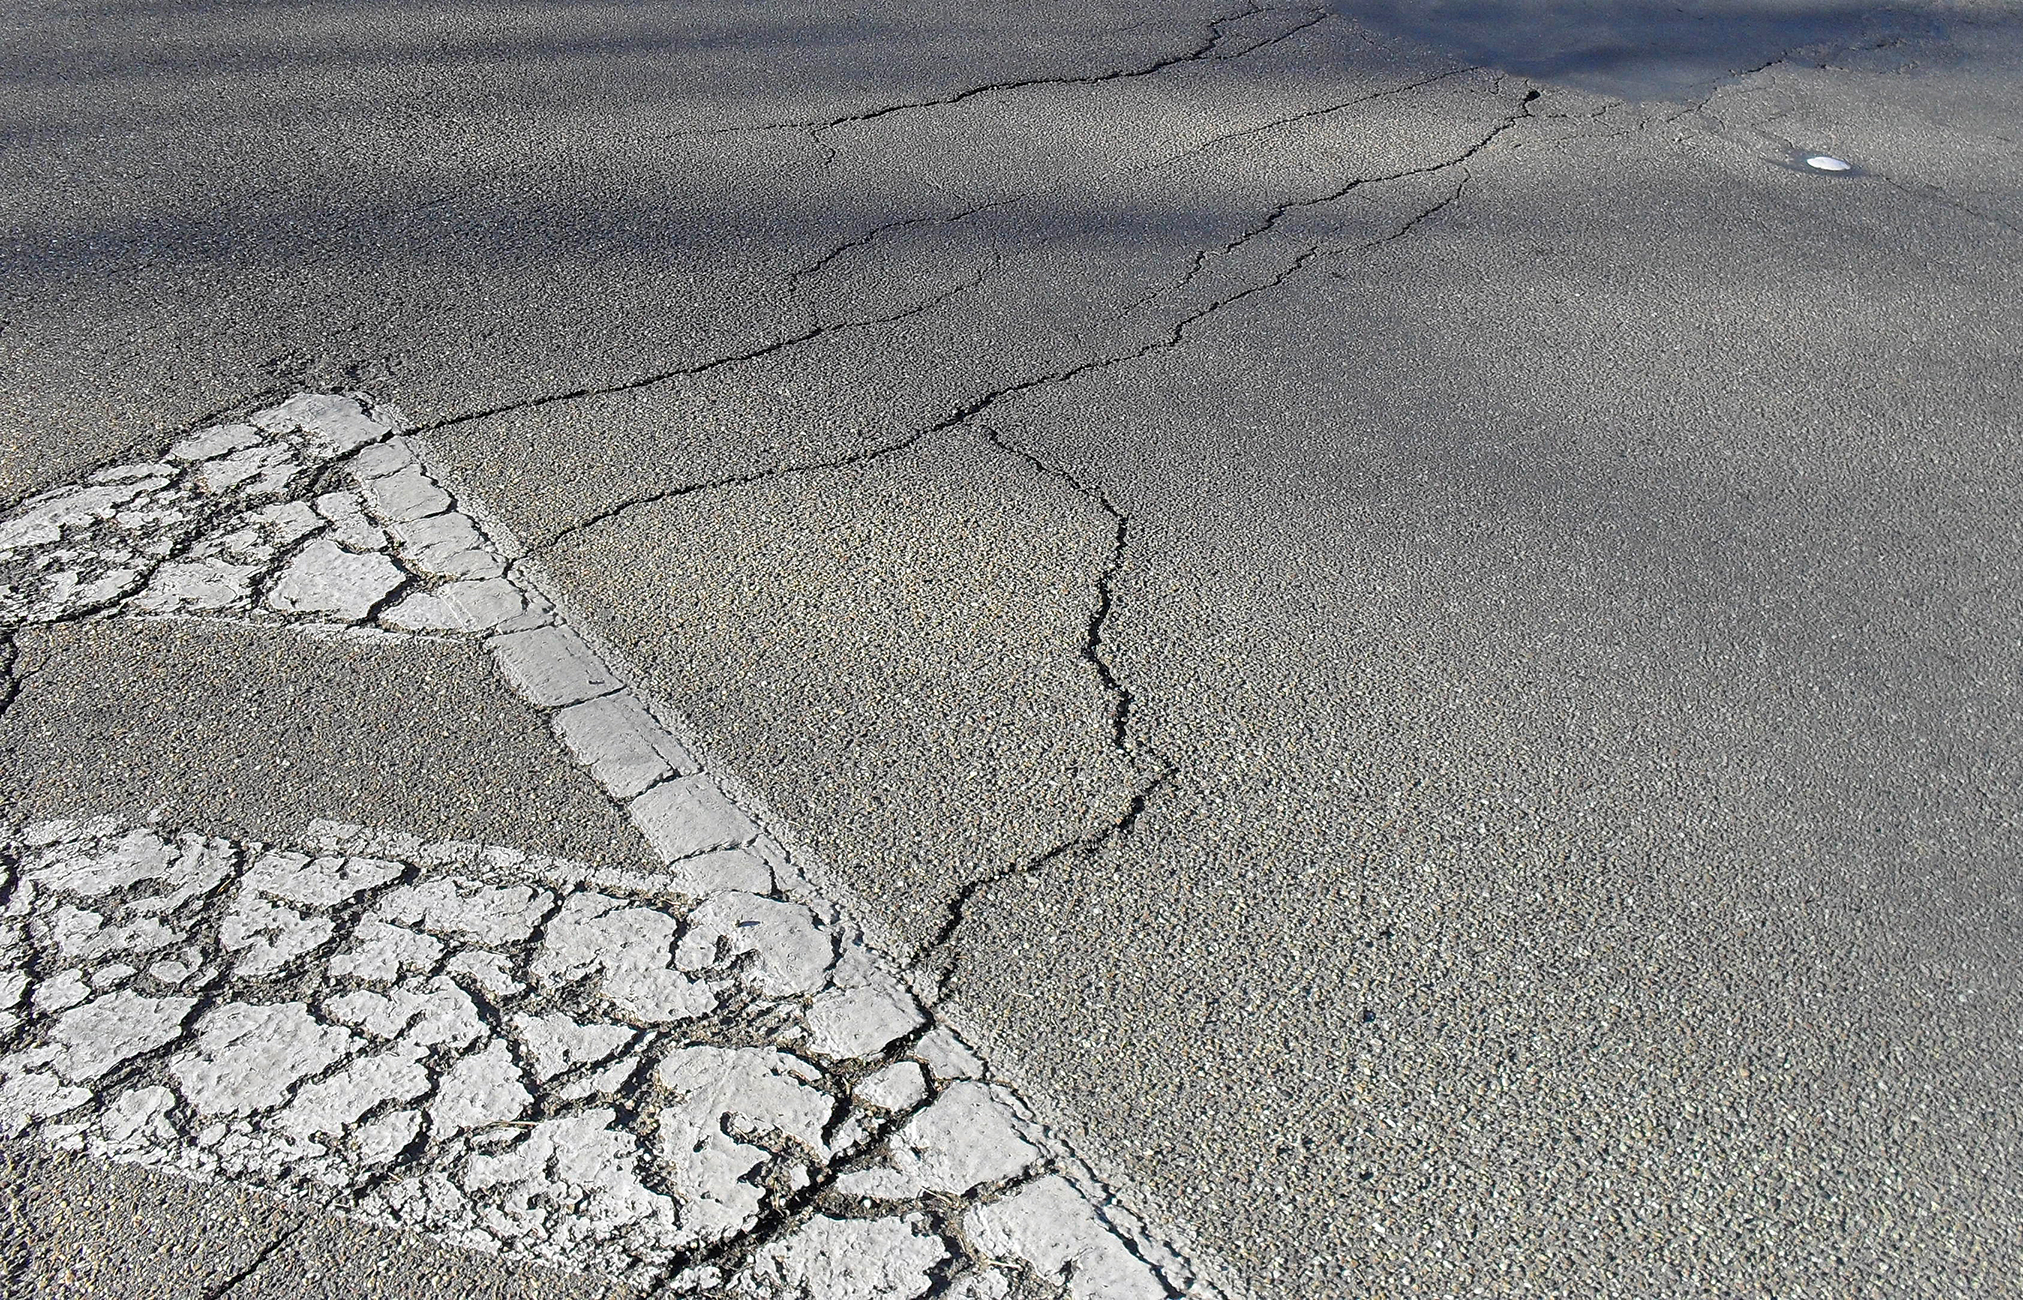 A photo of cracked asphalt.